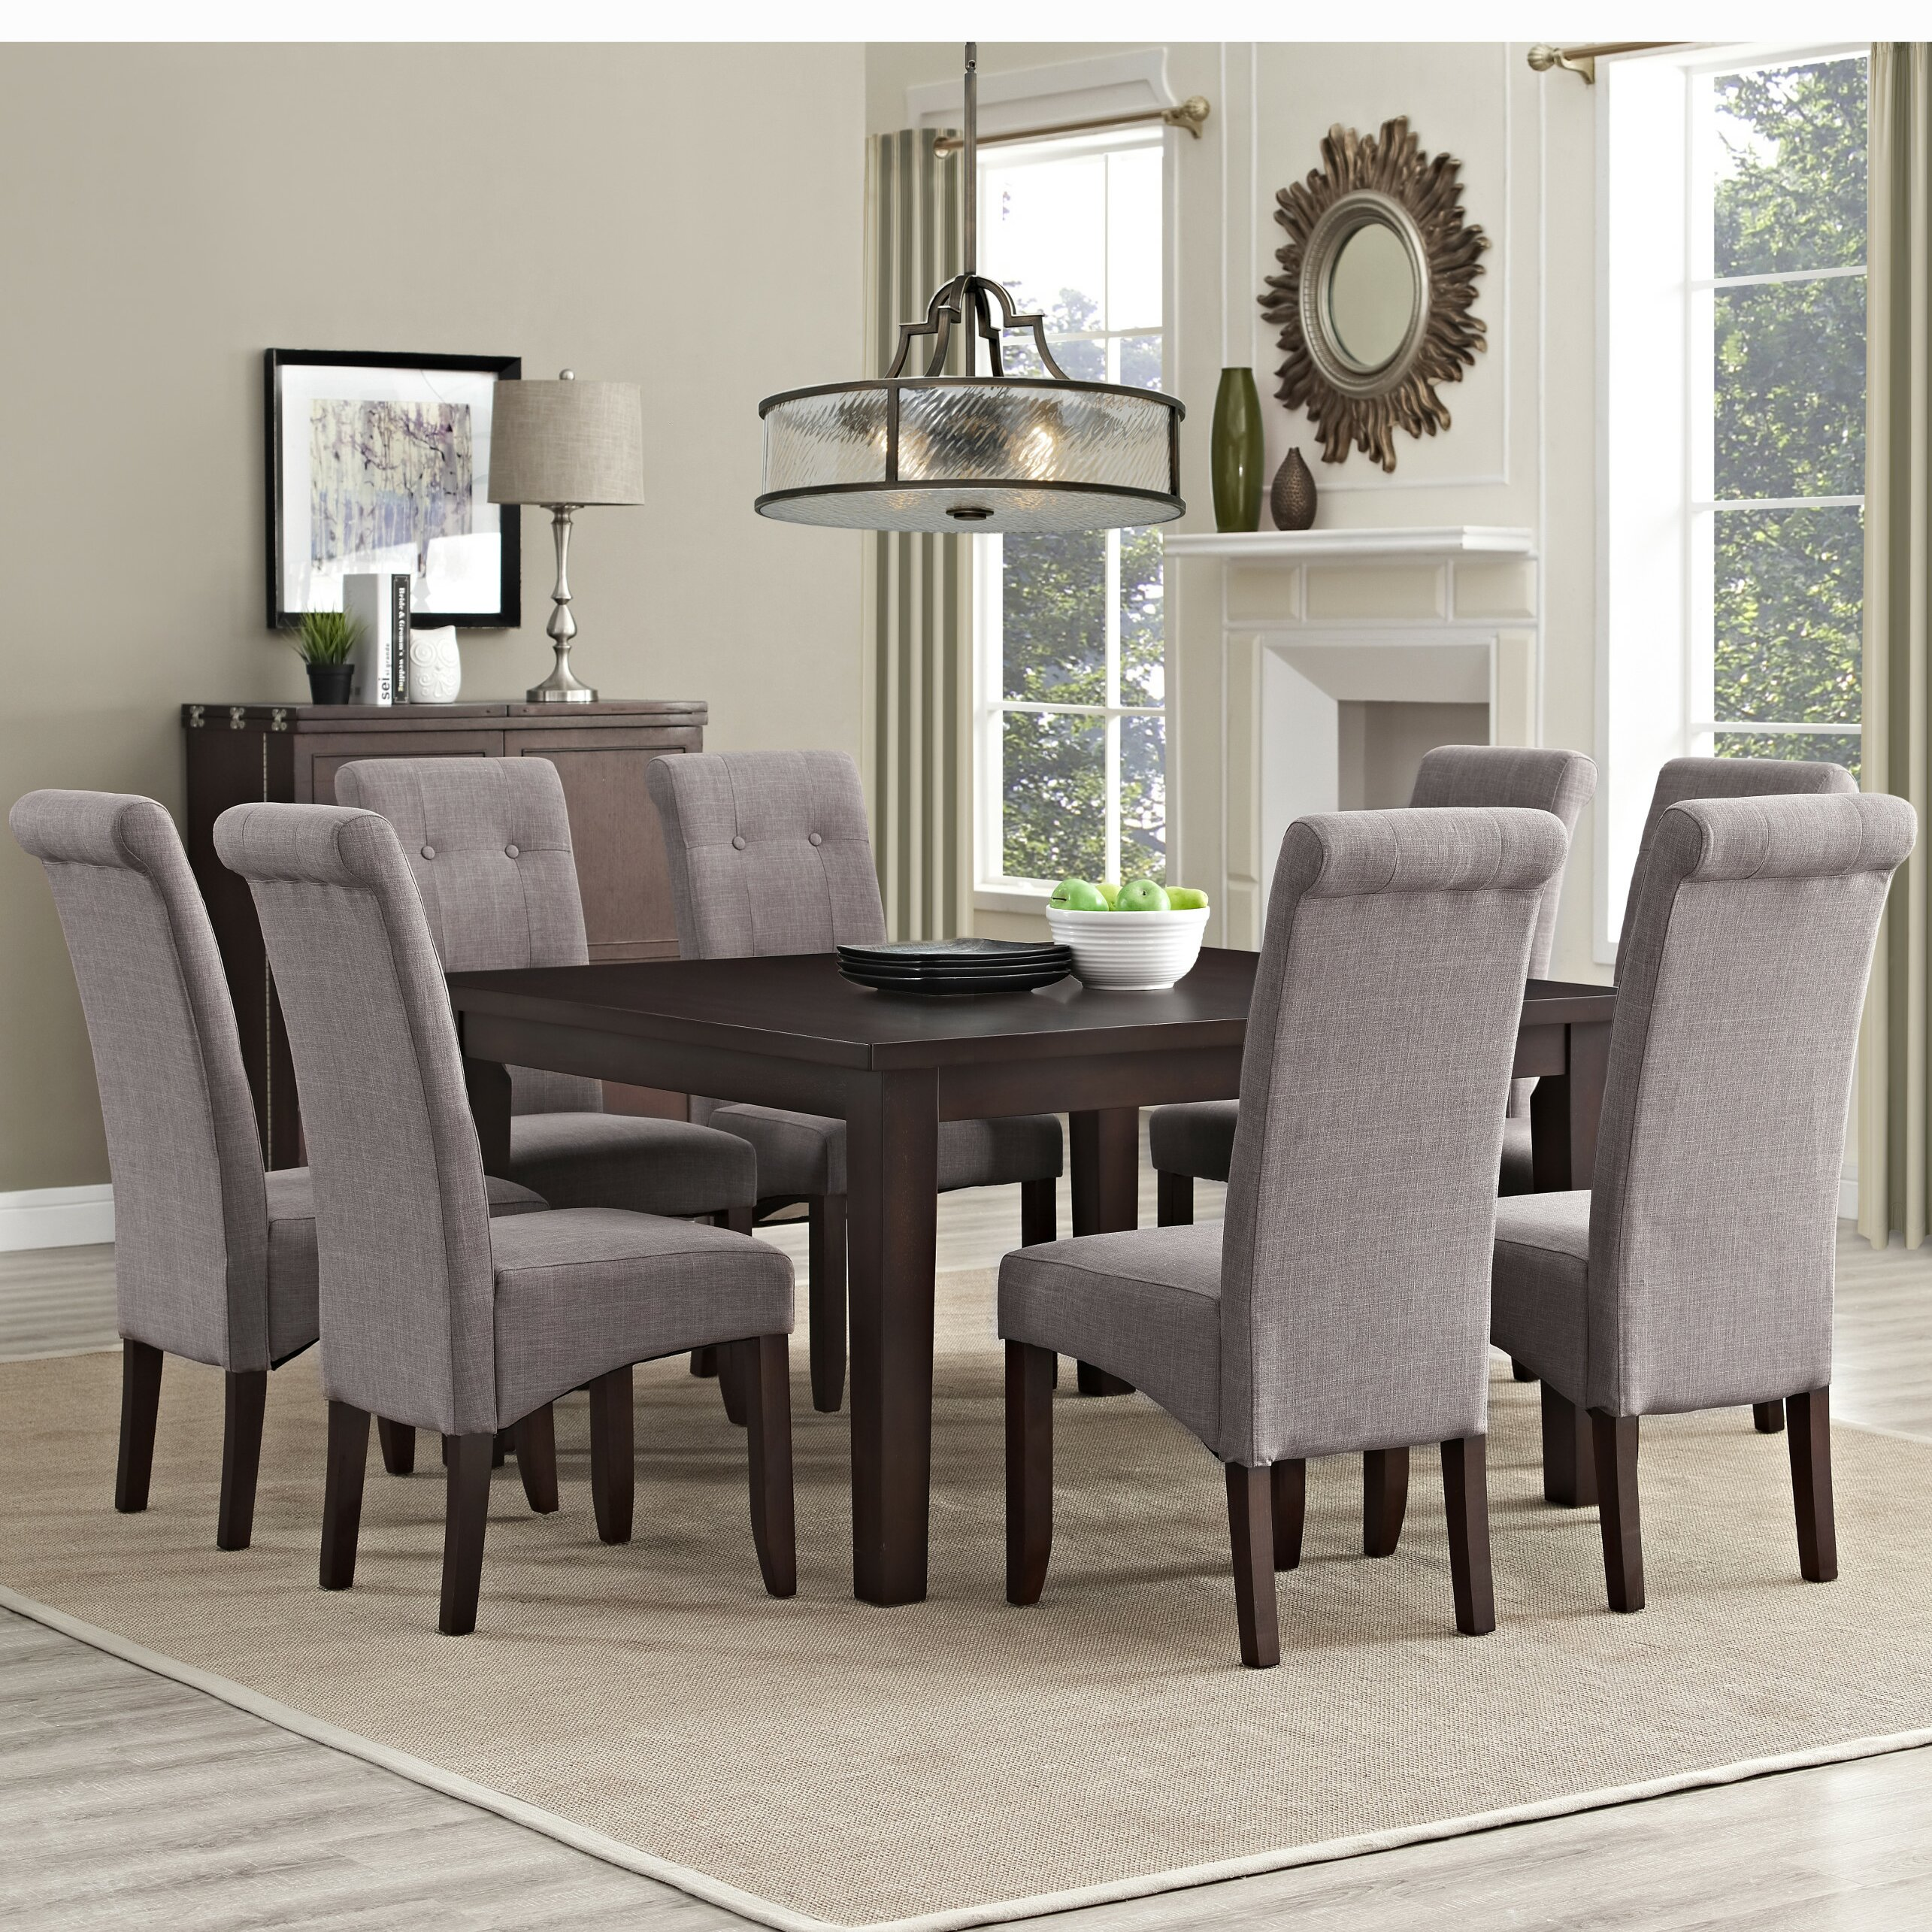 Dining Room Sets: Simpli Home Eastwood 9 Piece Dining Set & Reviews